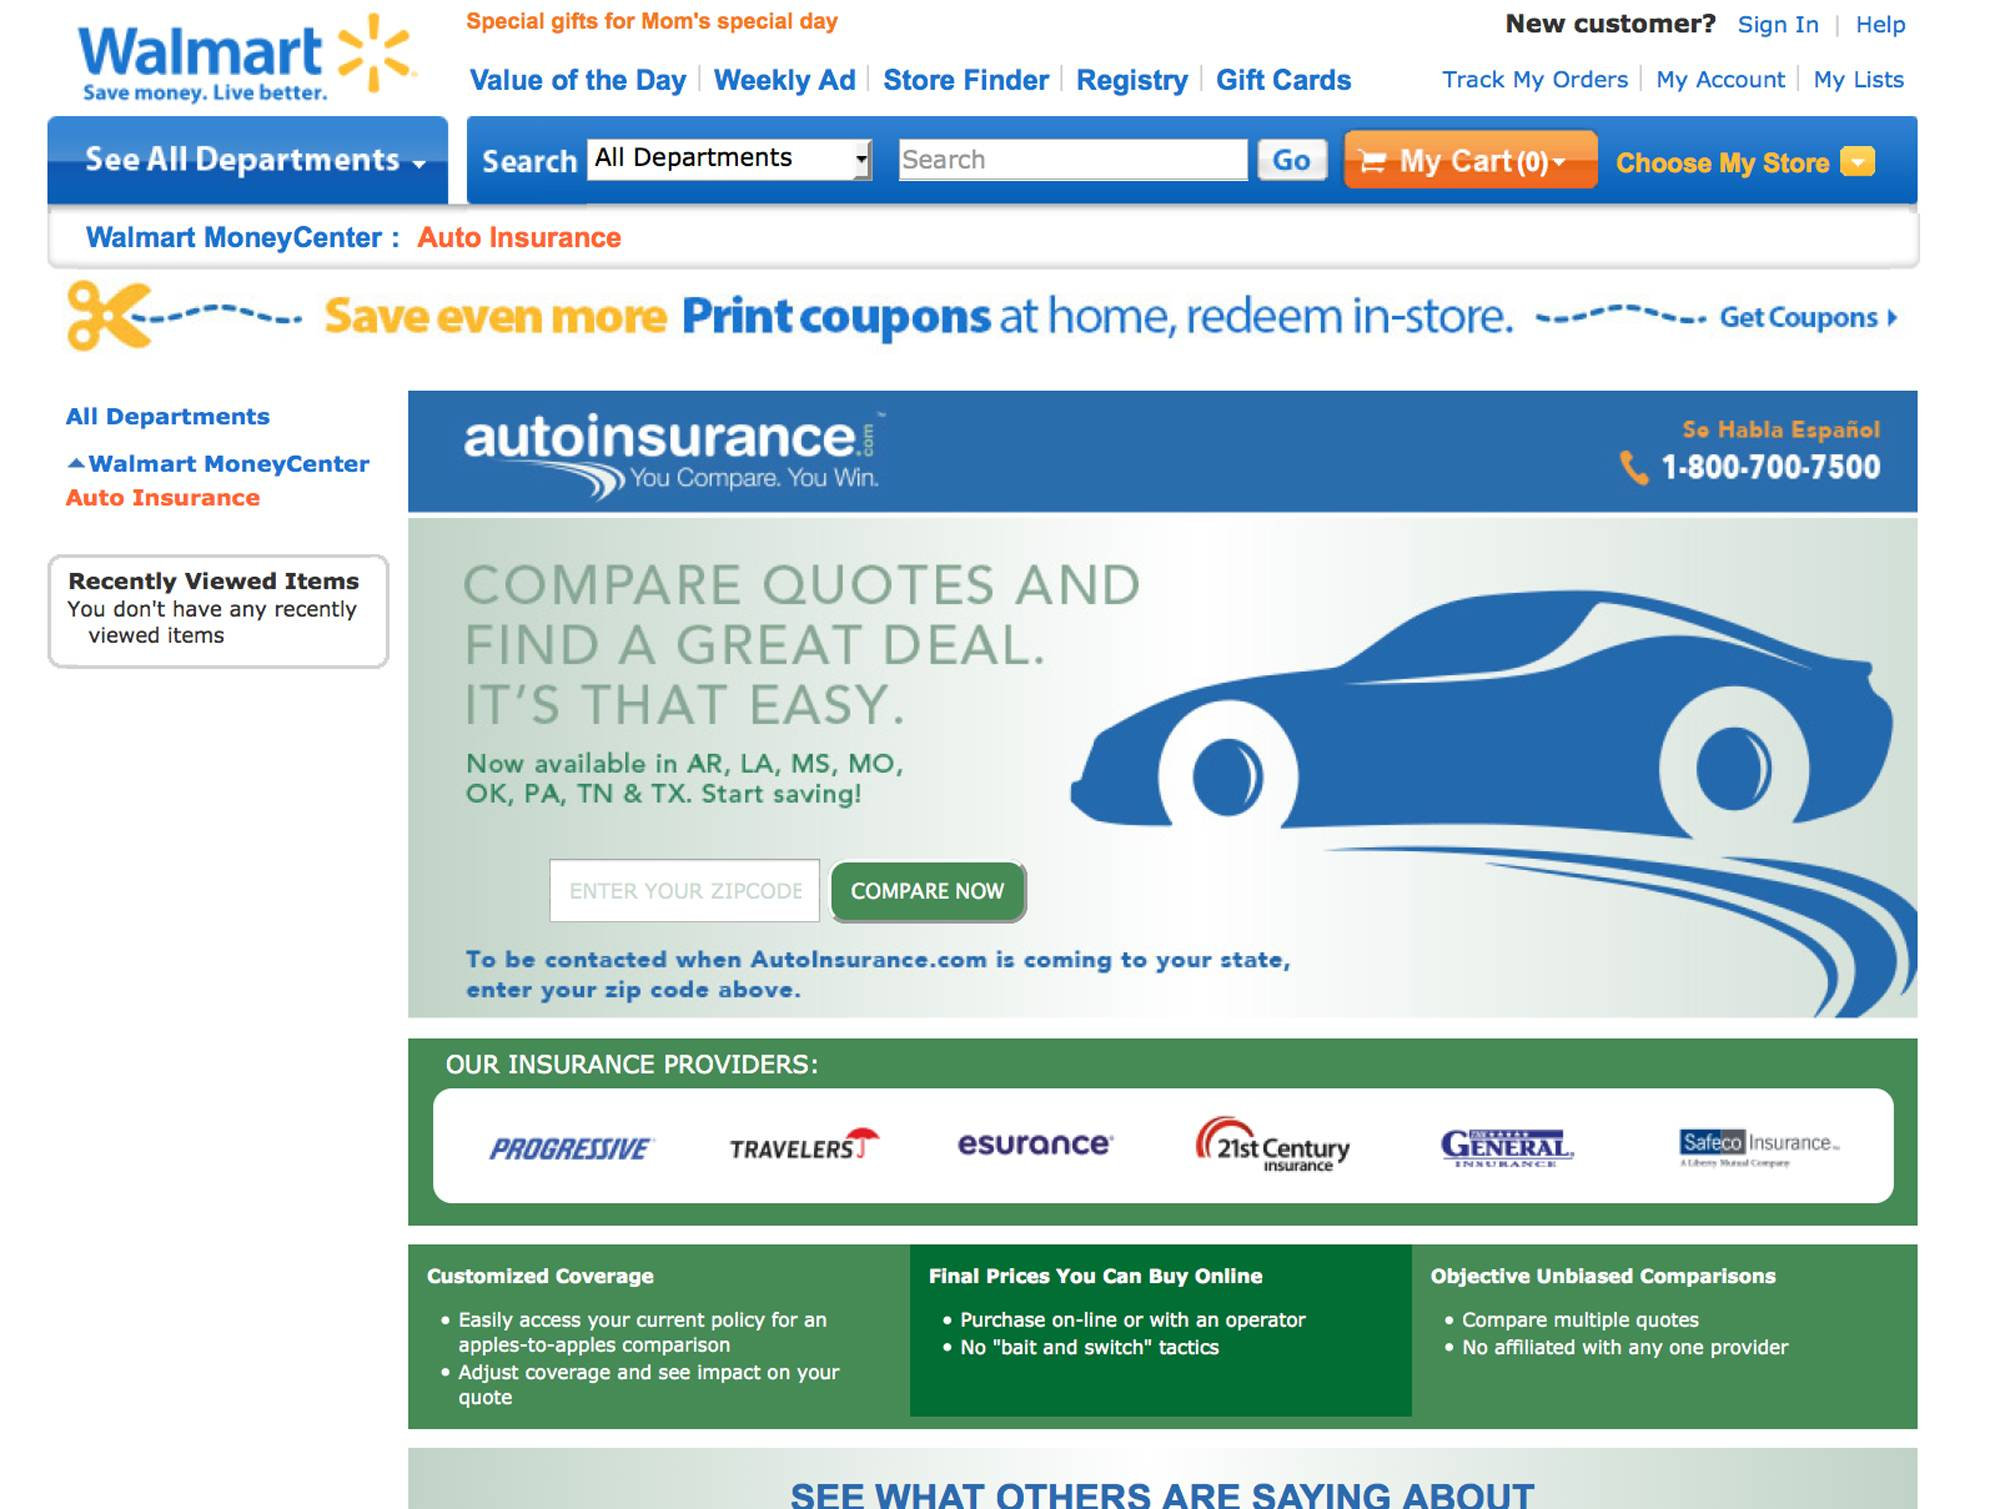 Wal-Mart is bringing one-stop shopping to another area: auto insurance. The world's largest retailer has teamed up with AutoInsurance.com to let shoppers quickly find and buy insurance policies online in real time to cut down costs.